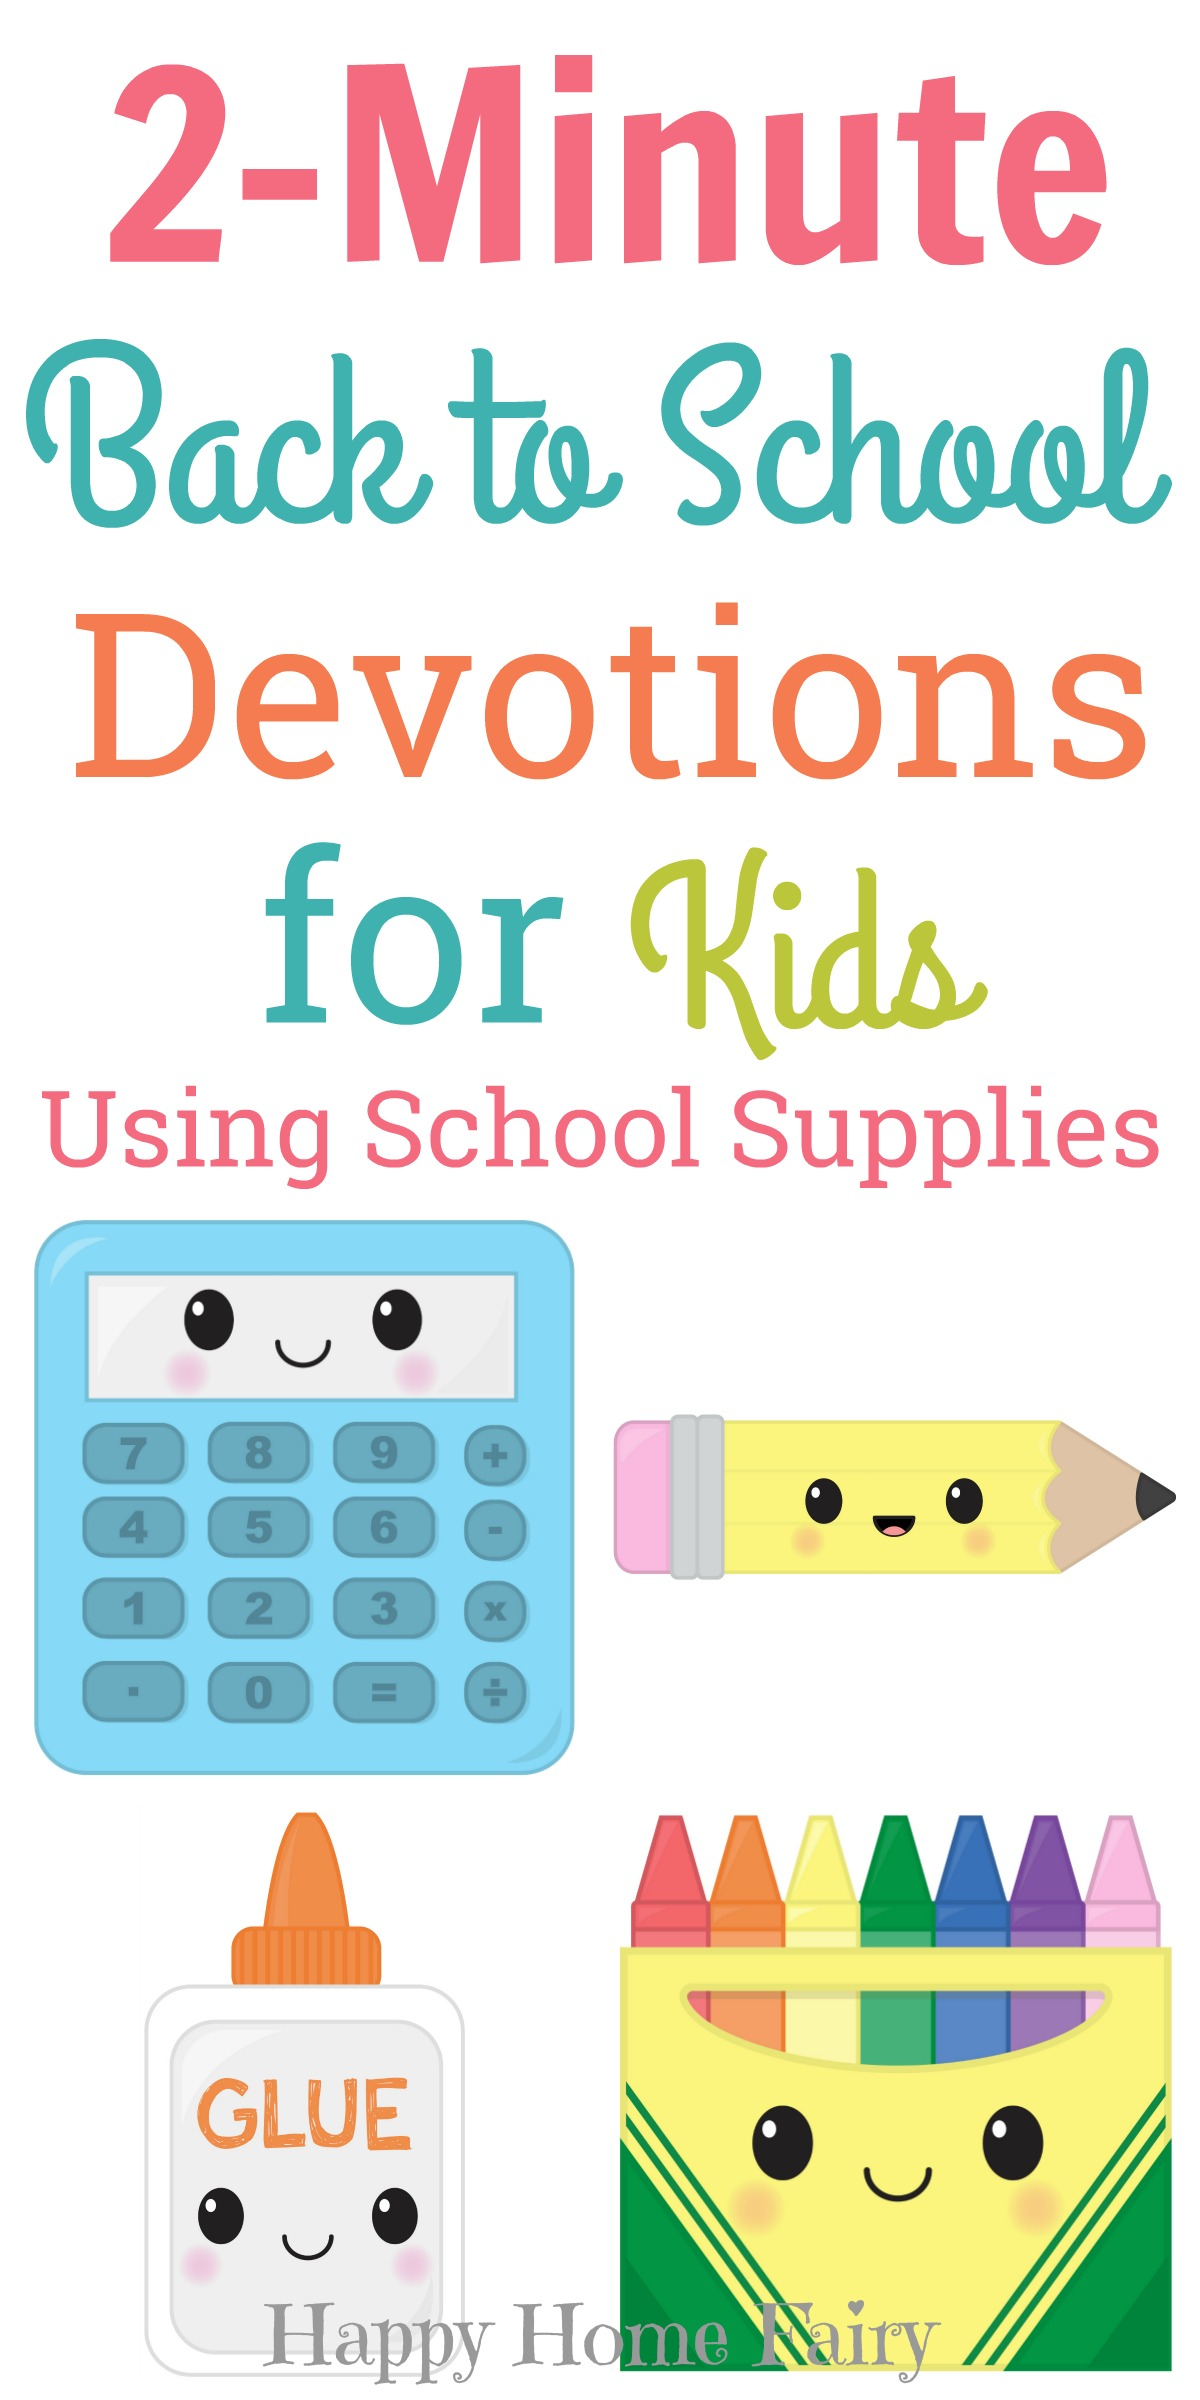 image regarding Printable Devotions named 2-Instant Again toward Higher education Devotions for Youngsters - Content Property Fairy